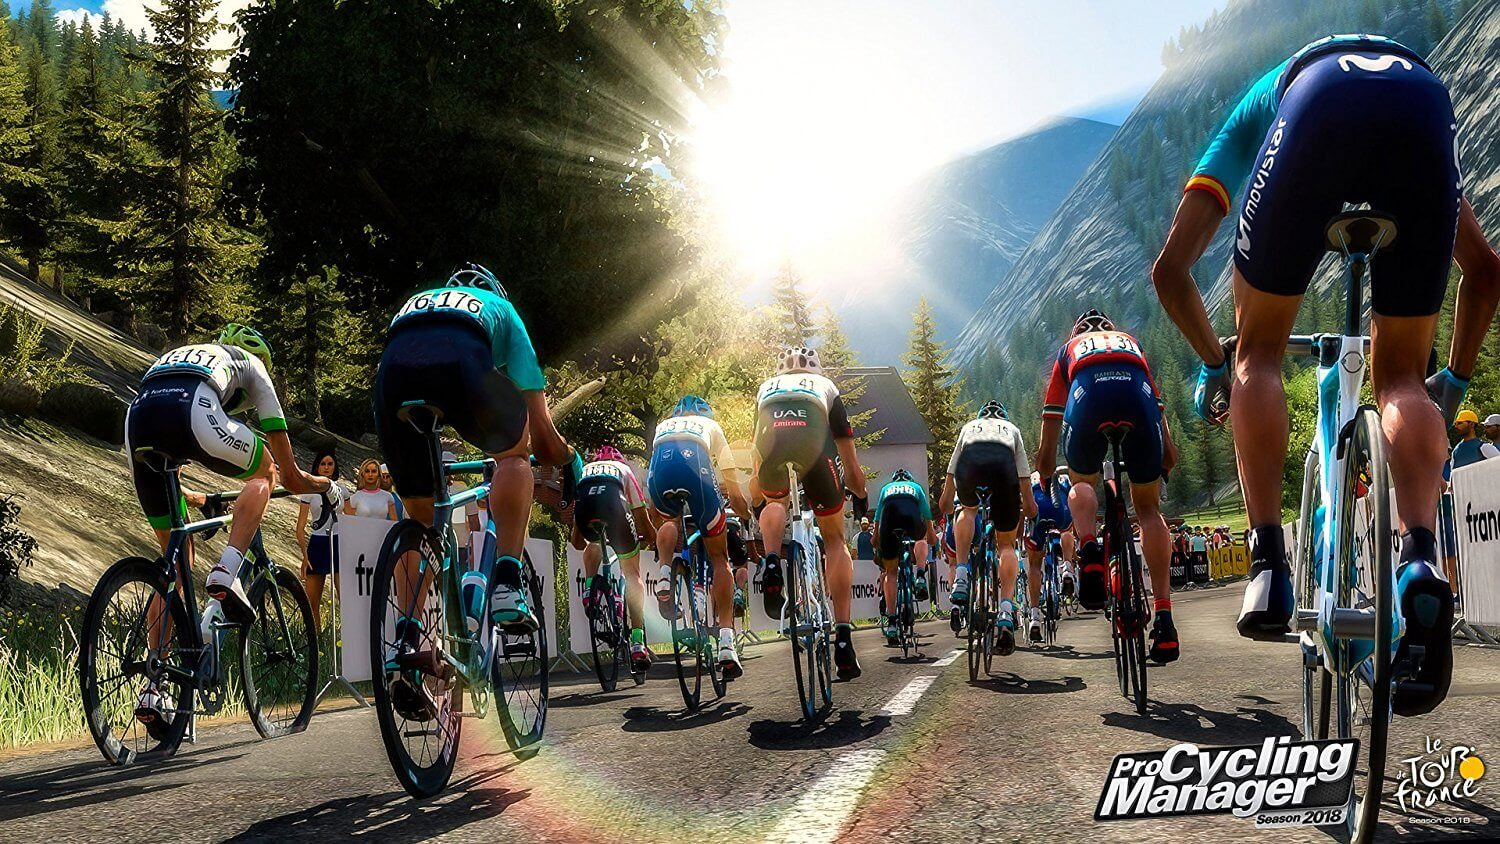 Pro Cycling Manager 2018 PC cheap key to download